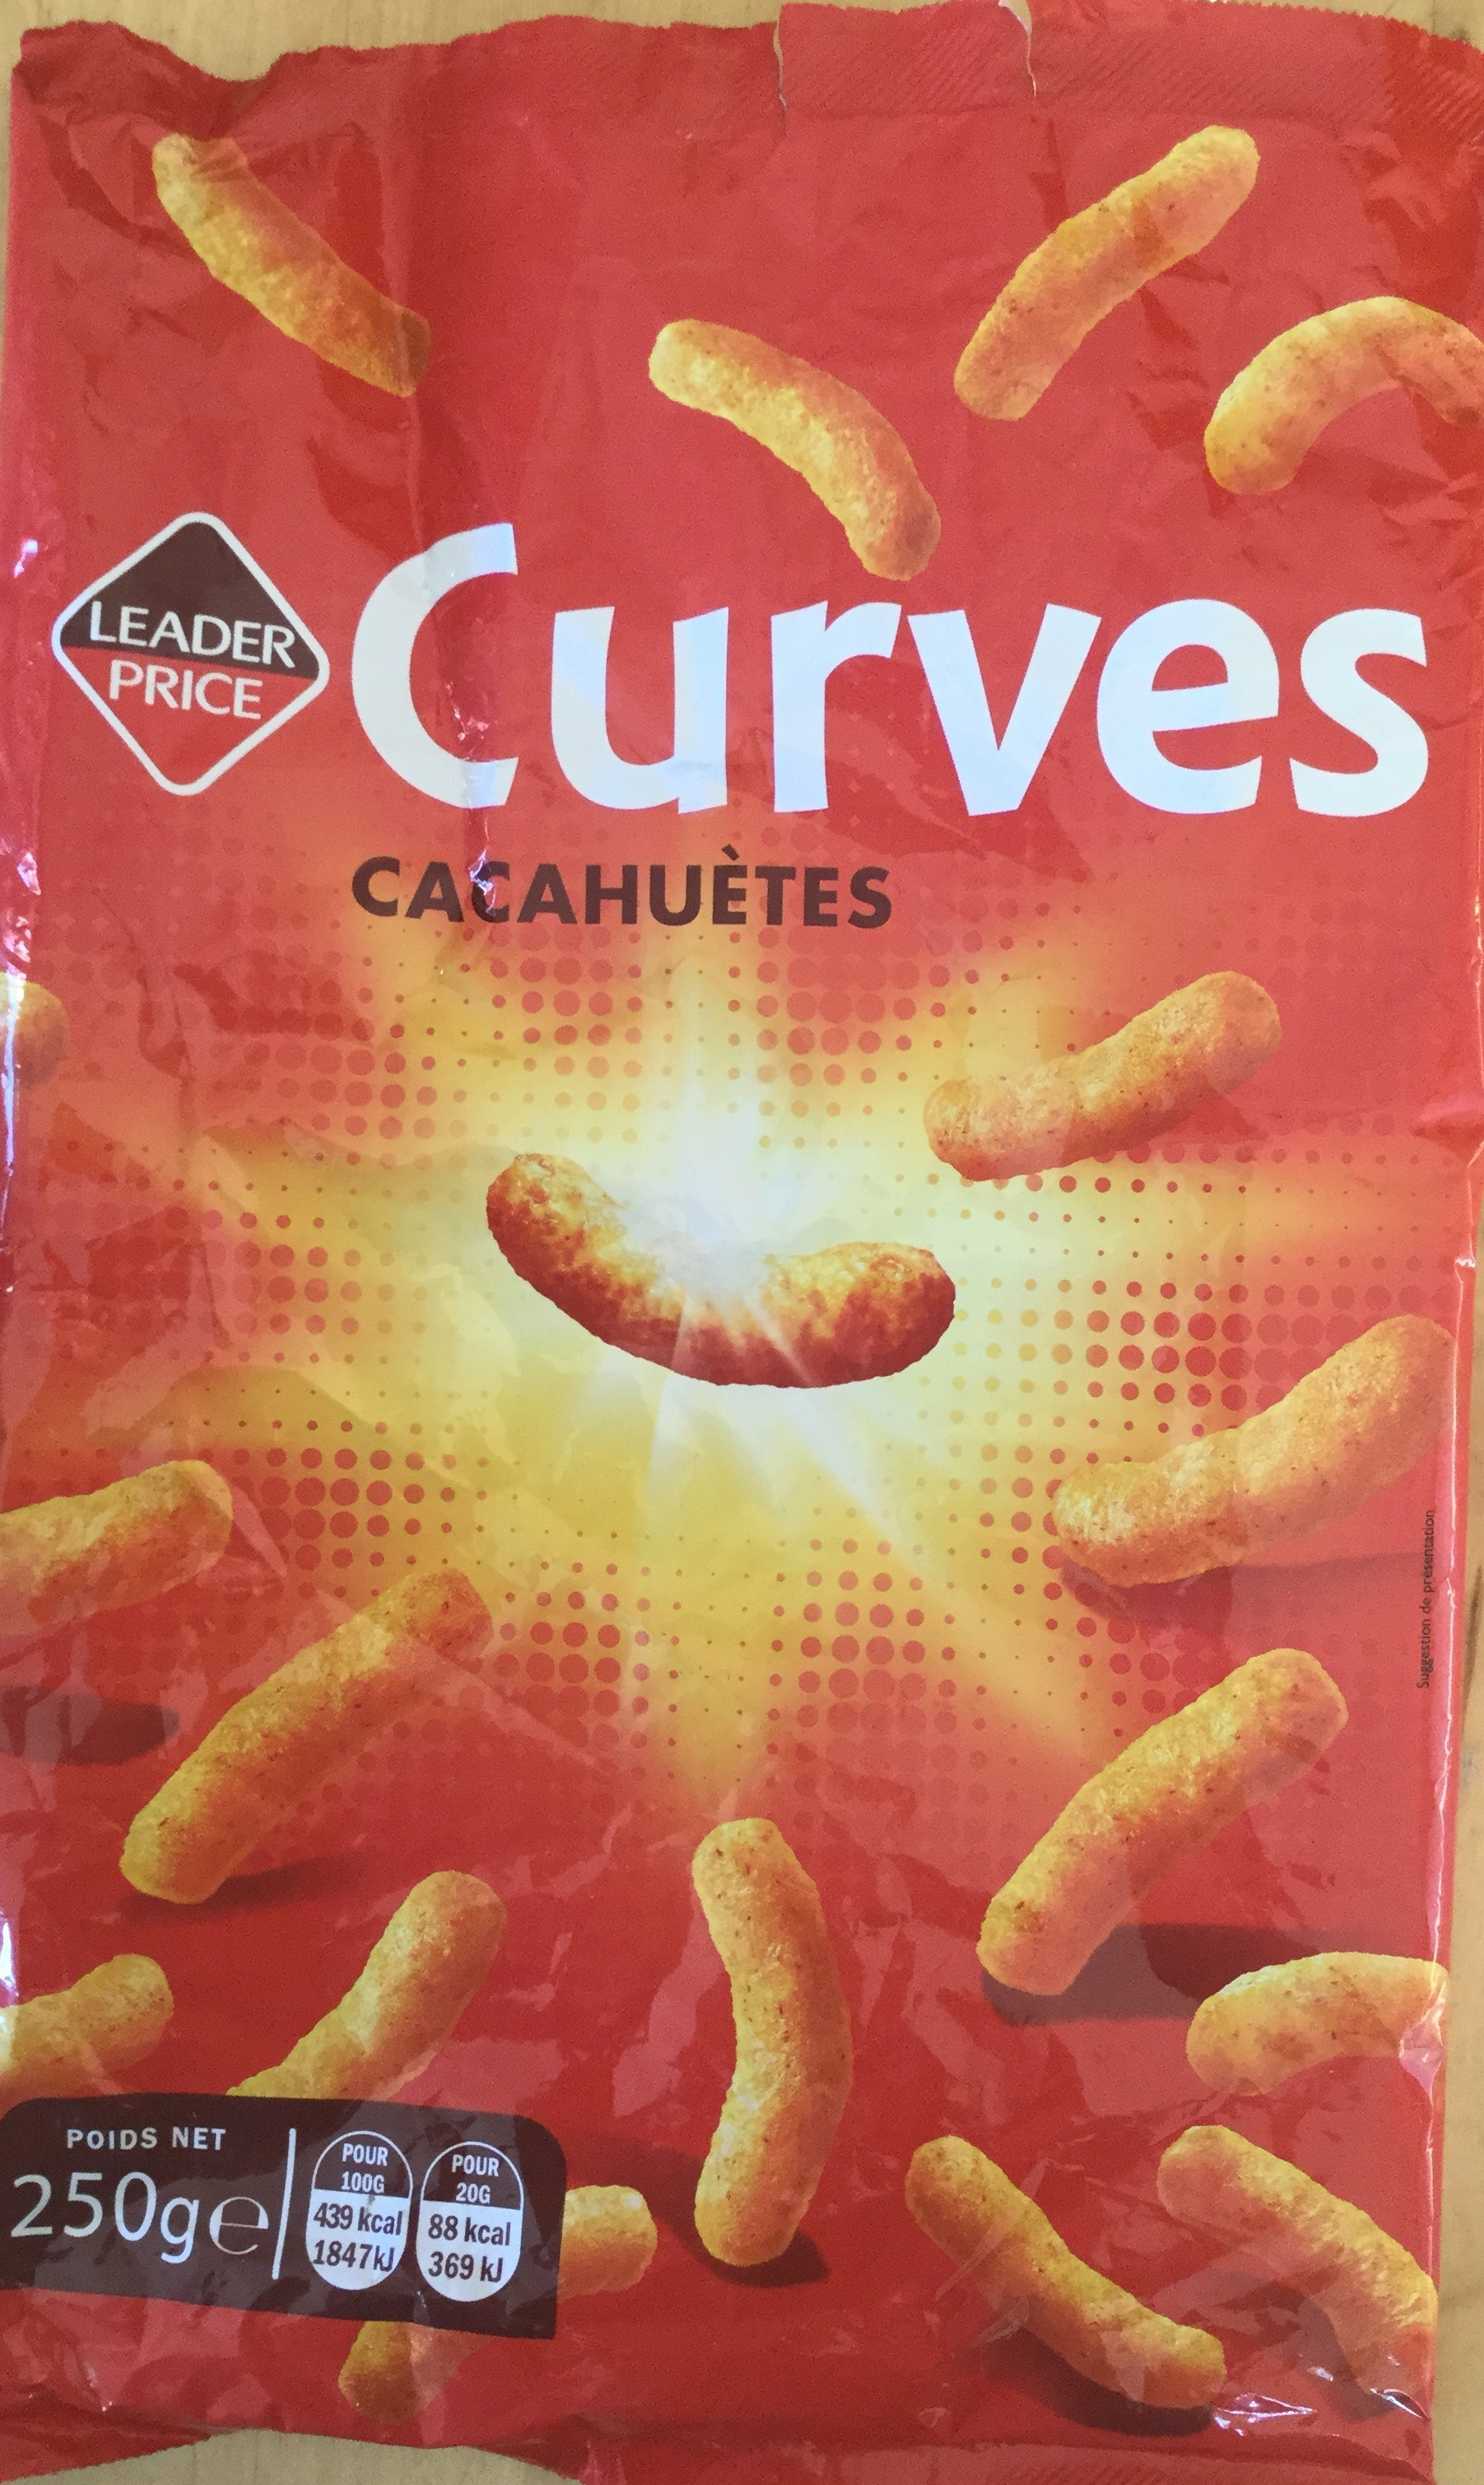 Curves cacahuètes - Producto - fr